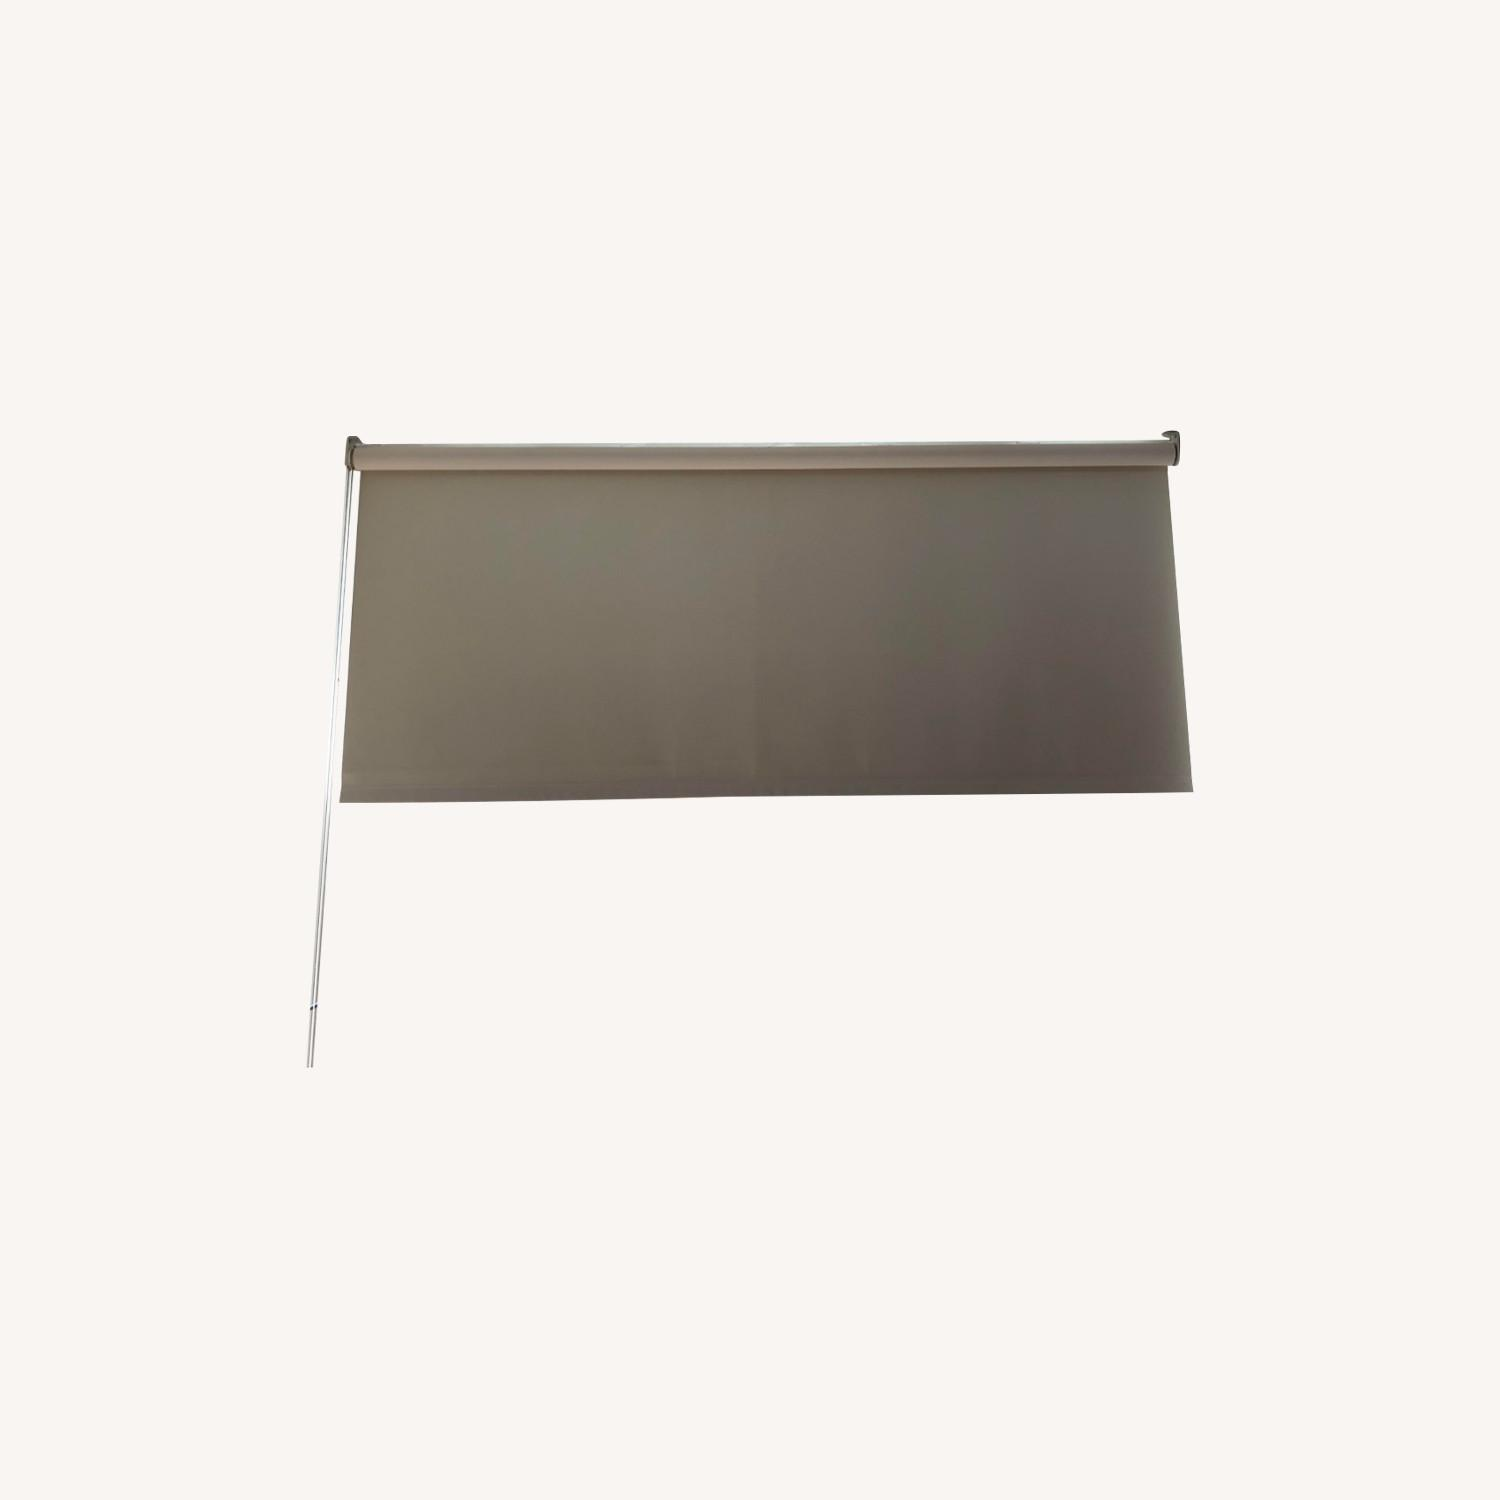 Home Depot Roll Down Black Out Shade - image-0